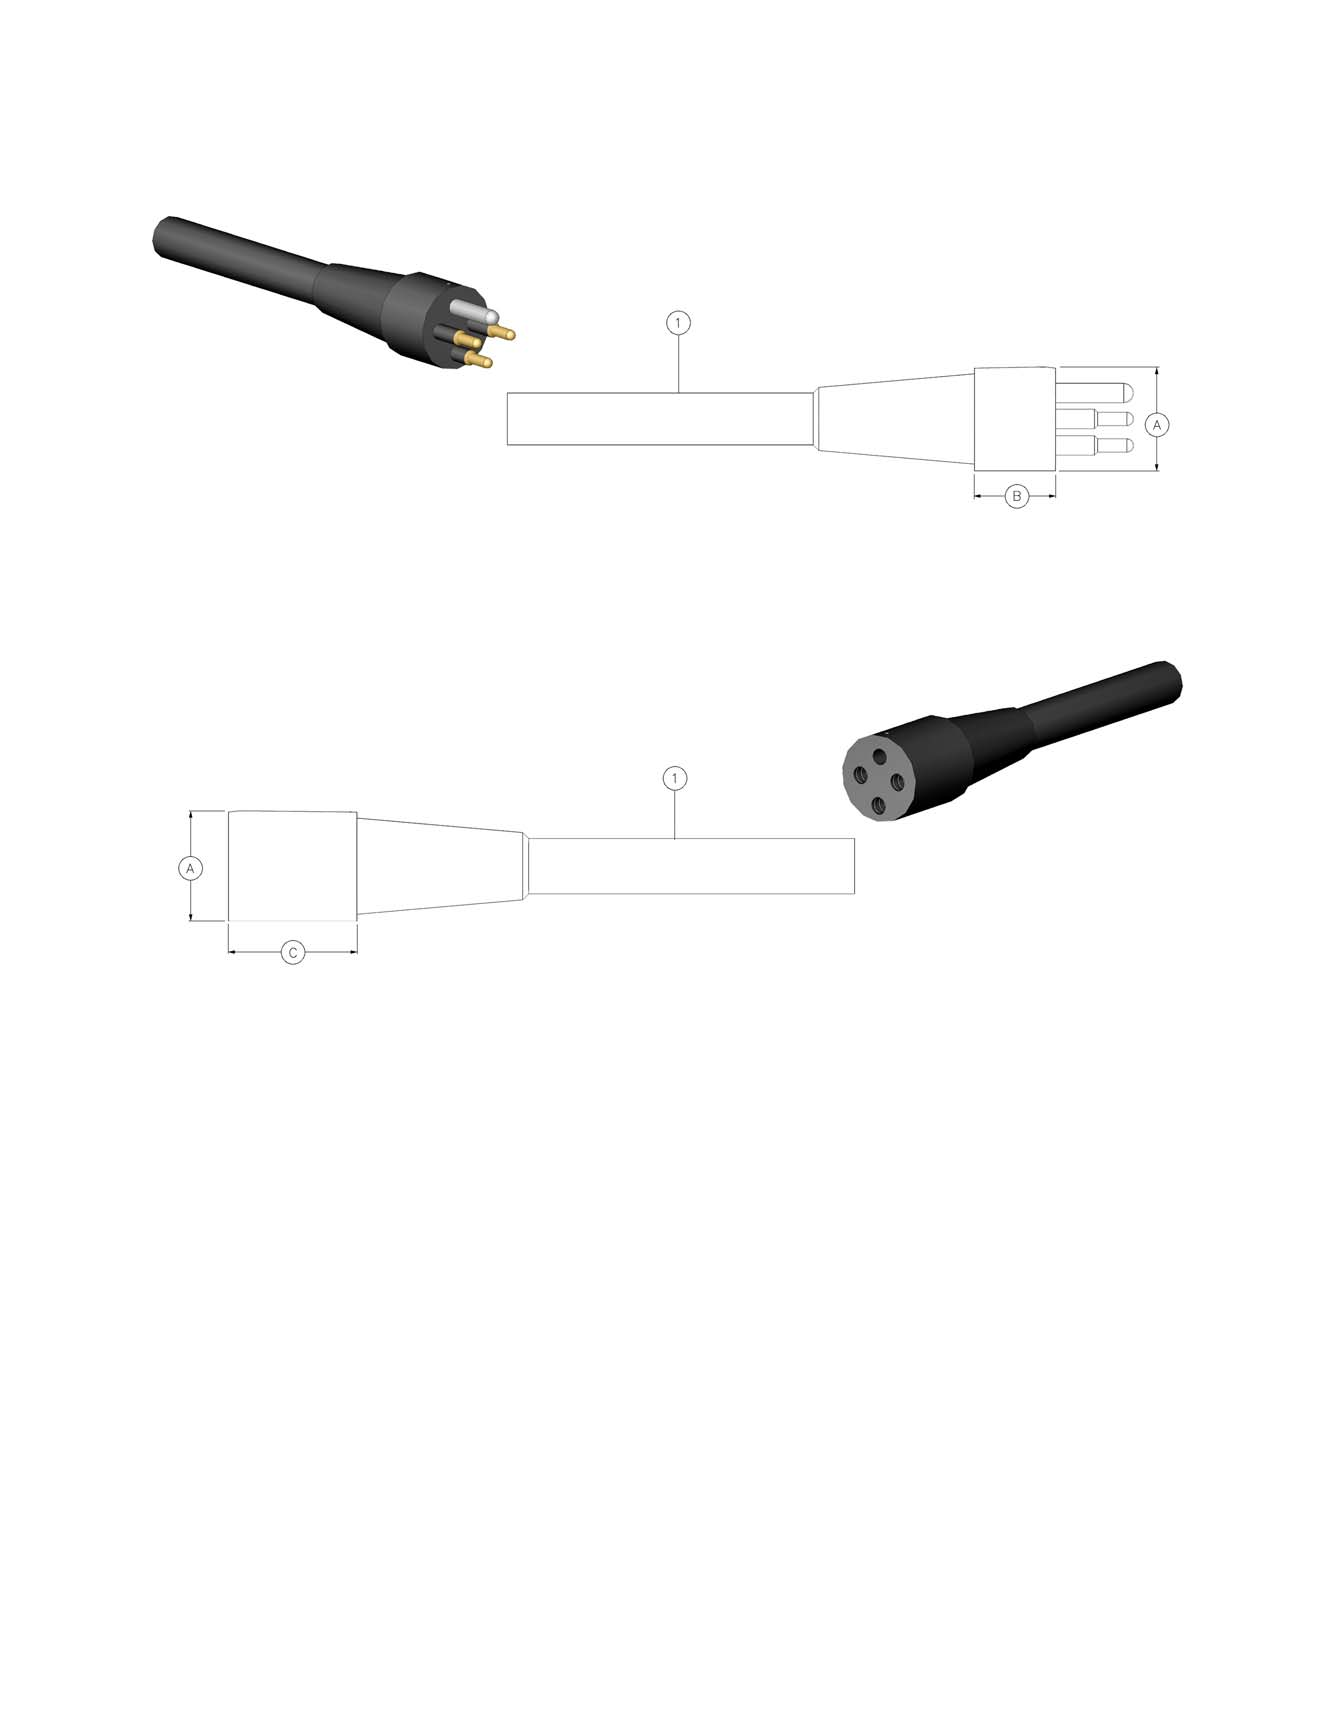 ^iijtbqround SERIES DIMENSION DETAILS AW-MP with Ground (w/g) ^iijtbq Round with Ground In-Line Connector Mates with AW-FS and AW-S-BC Dummy Connector: AW-FSD AW-FS with Ground (w/g) ^iijtbq Round